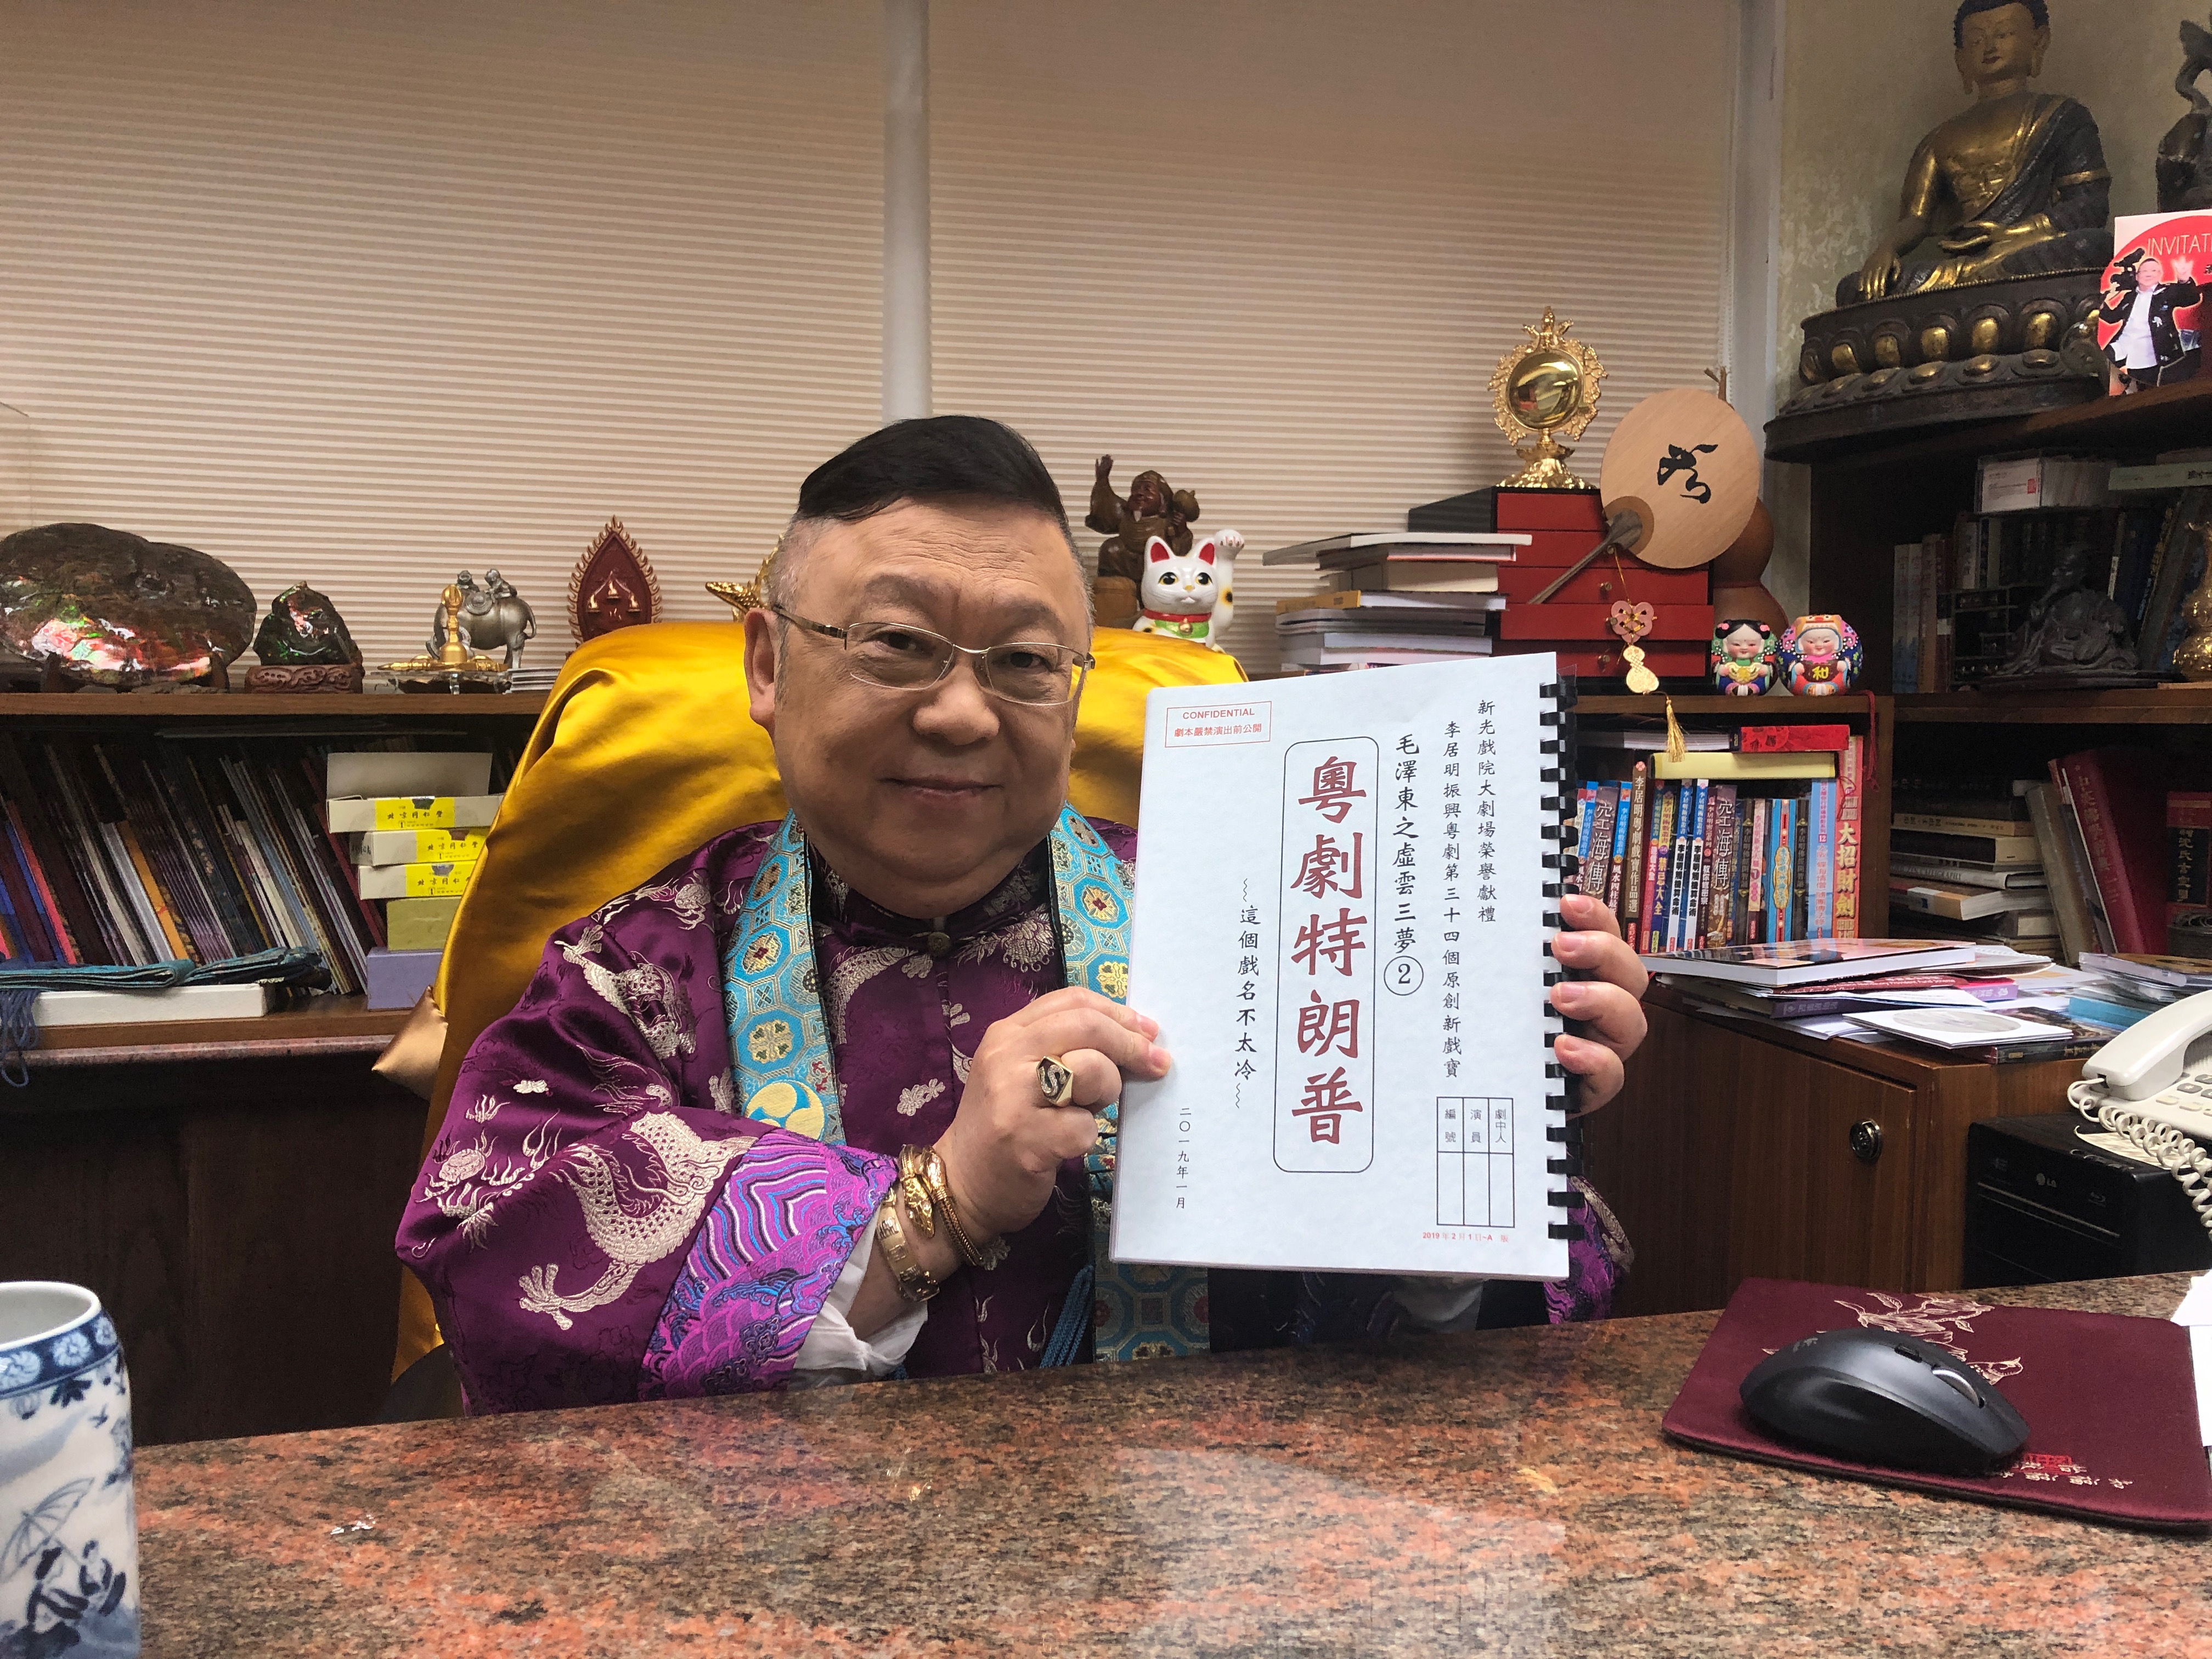 Li Kui-ming, feng shui master-turned Cantonese opera playwright, with the script of 'Trump on Show'.